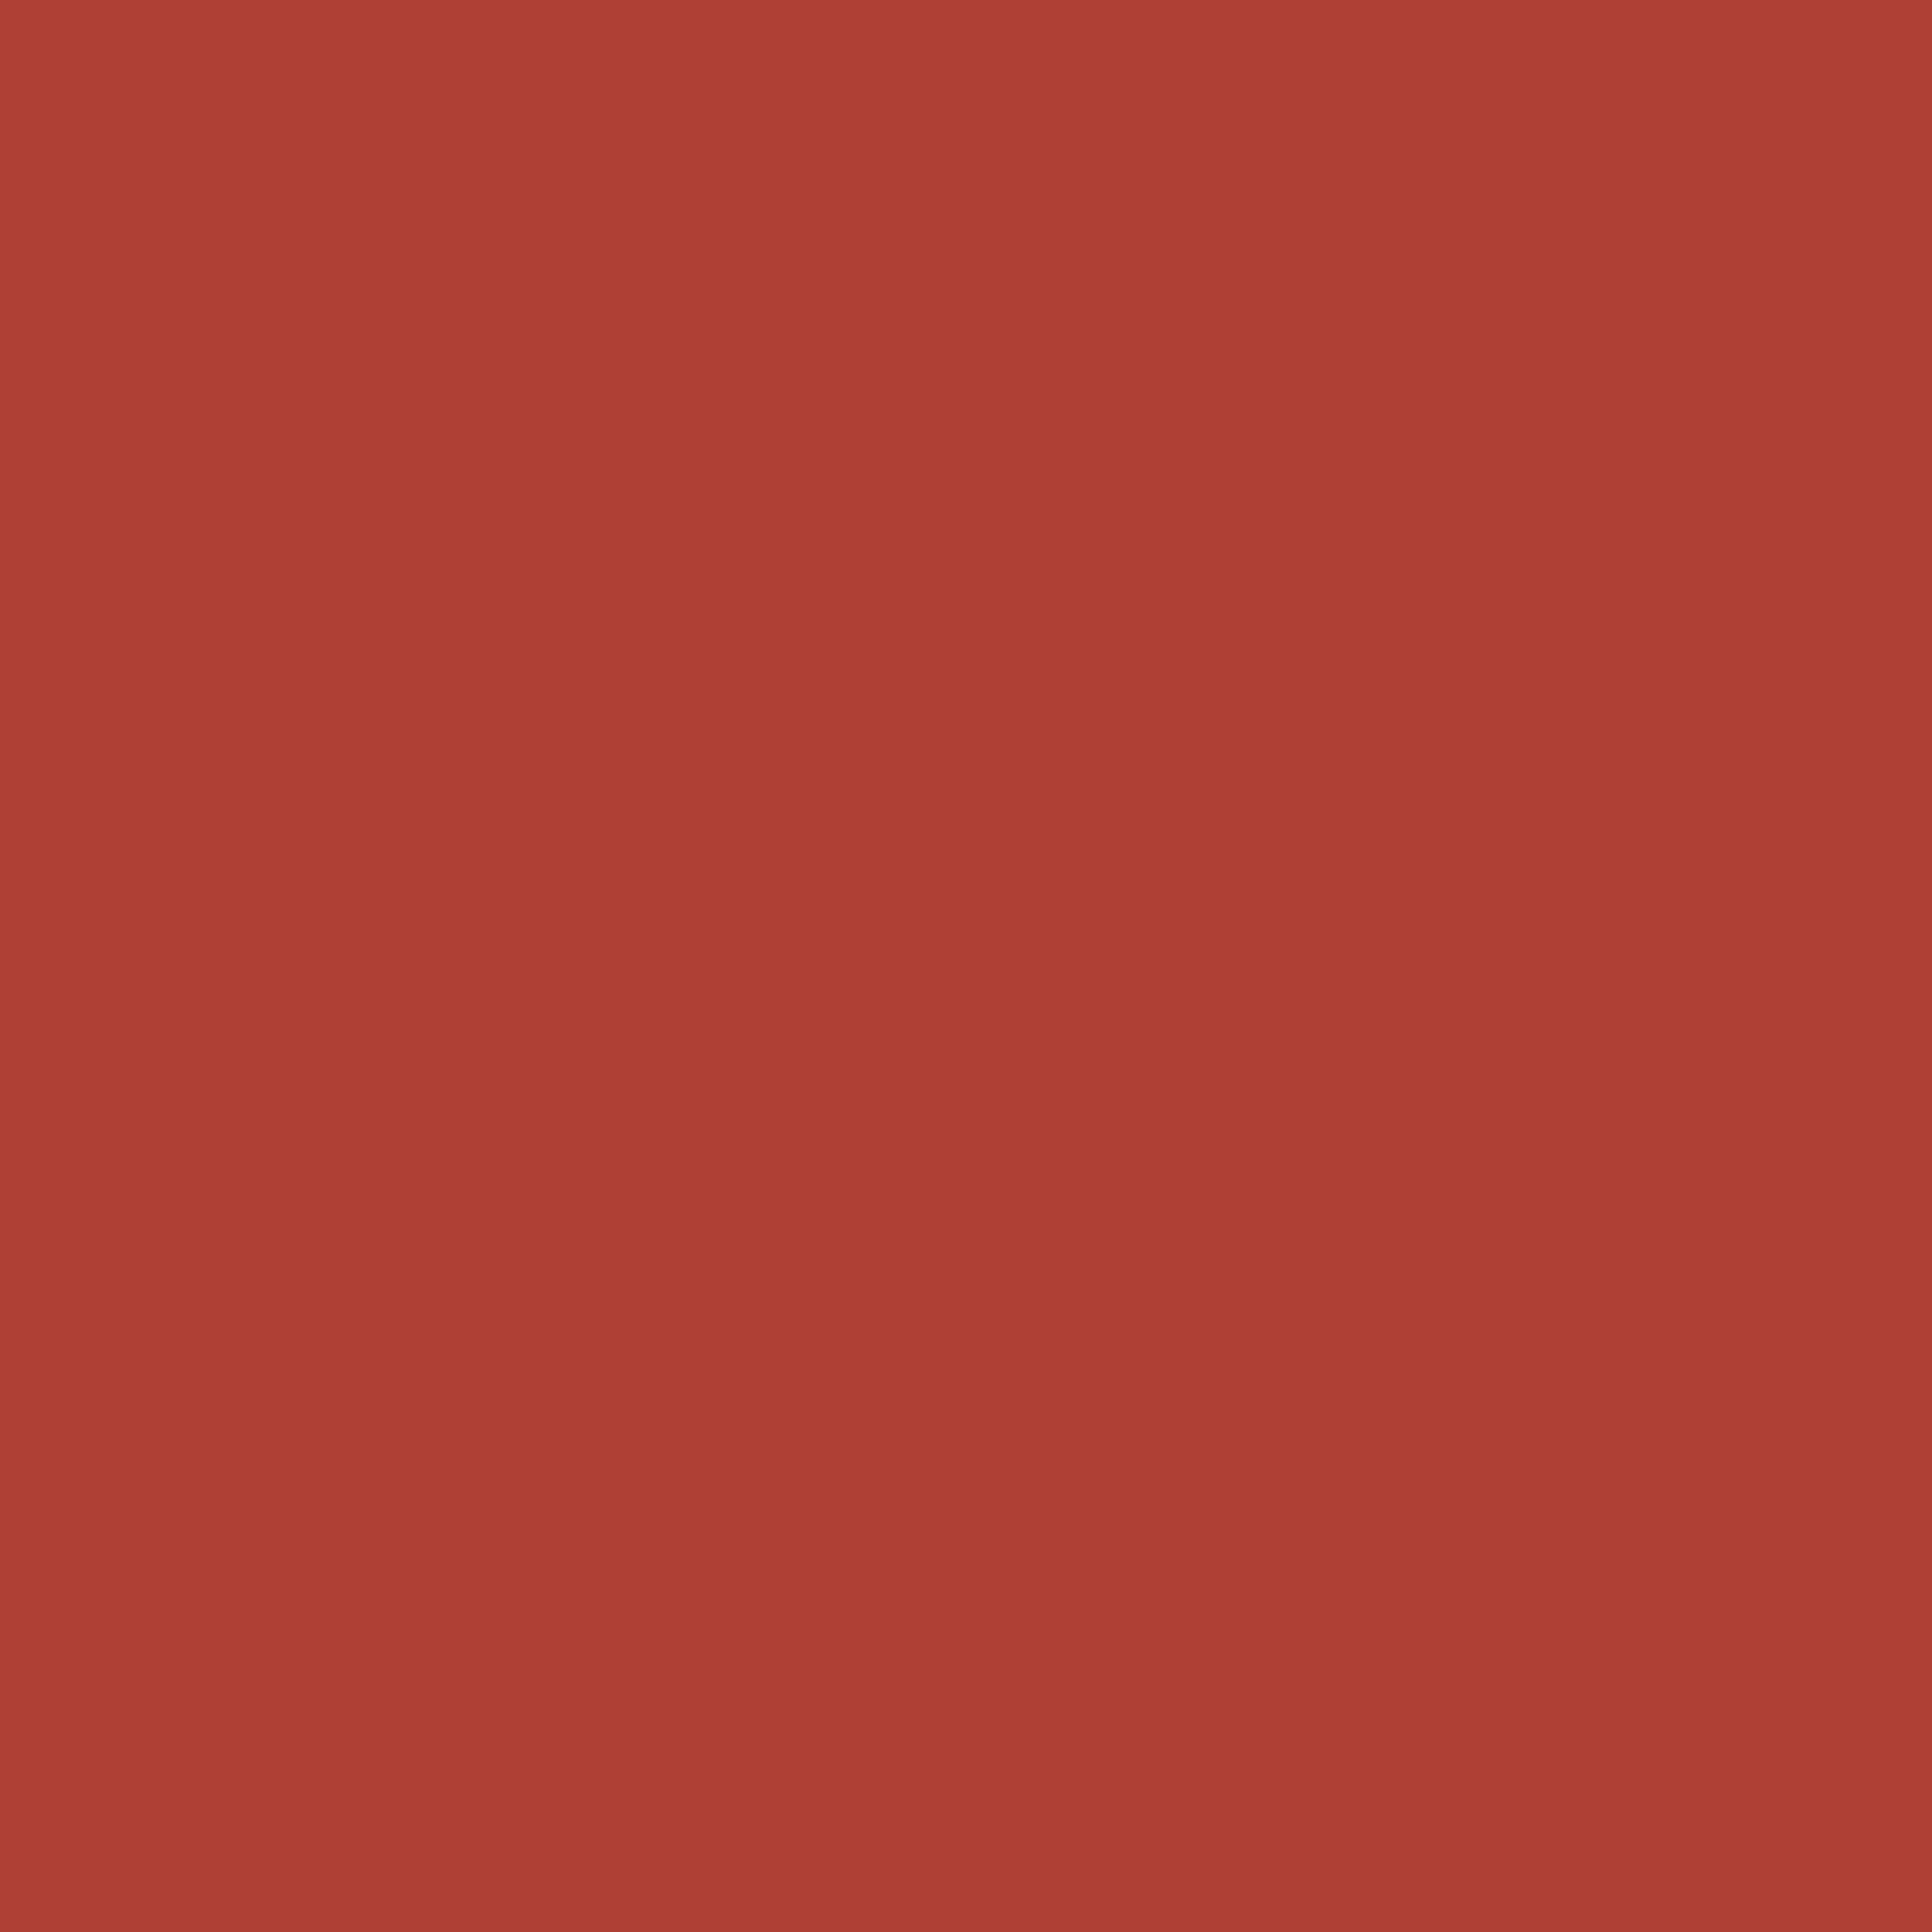 2732x2732 Pale Carmine Solid Color Background